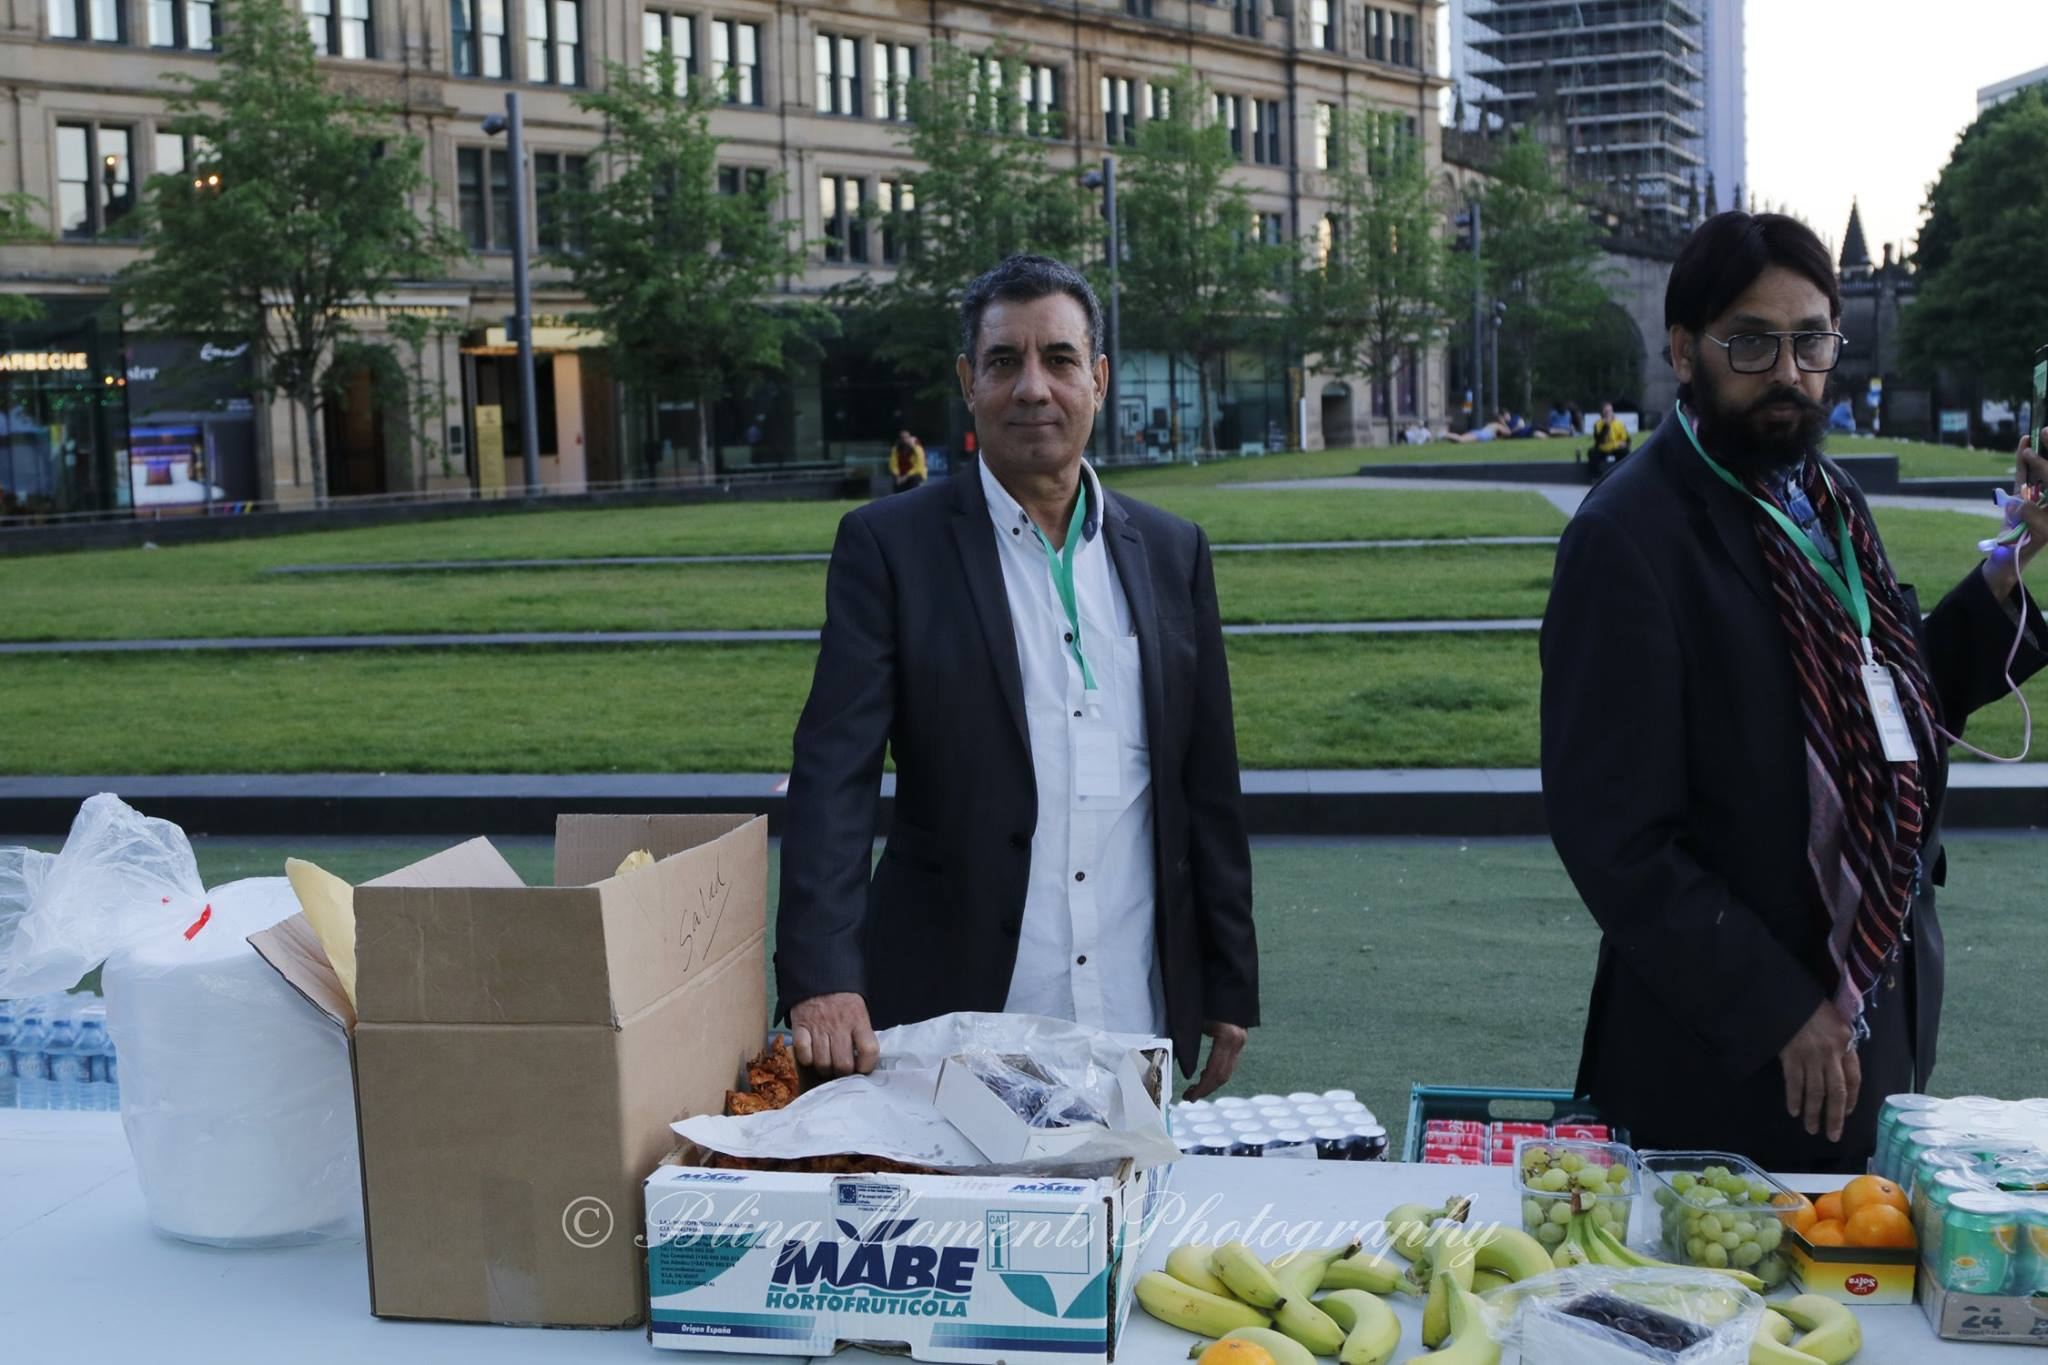 Greater Manchester Muslim Community